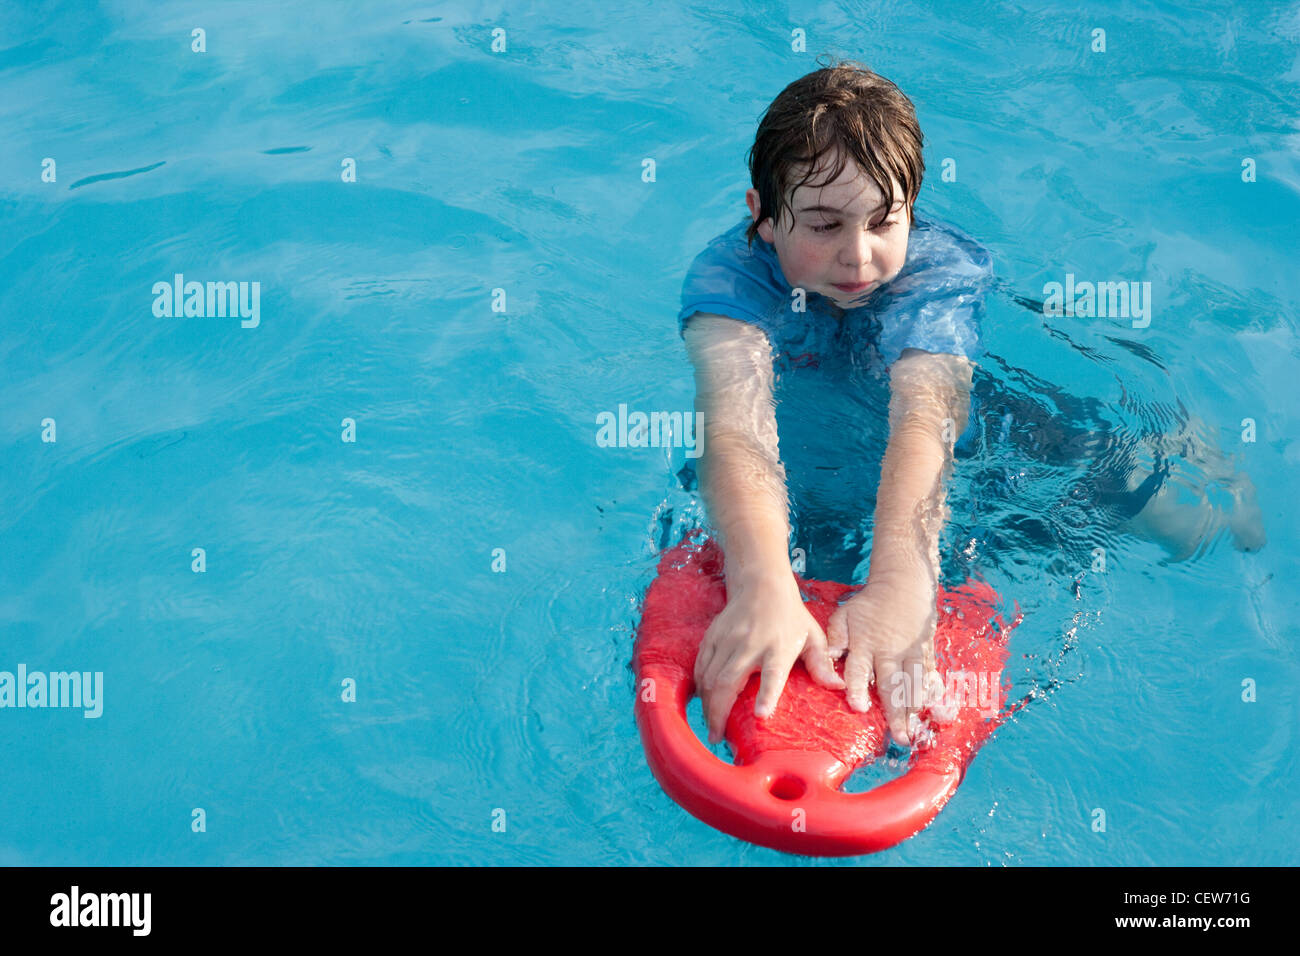 Twelve year old boy floats in swimming pool with a red floatation device. - Stock Image